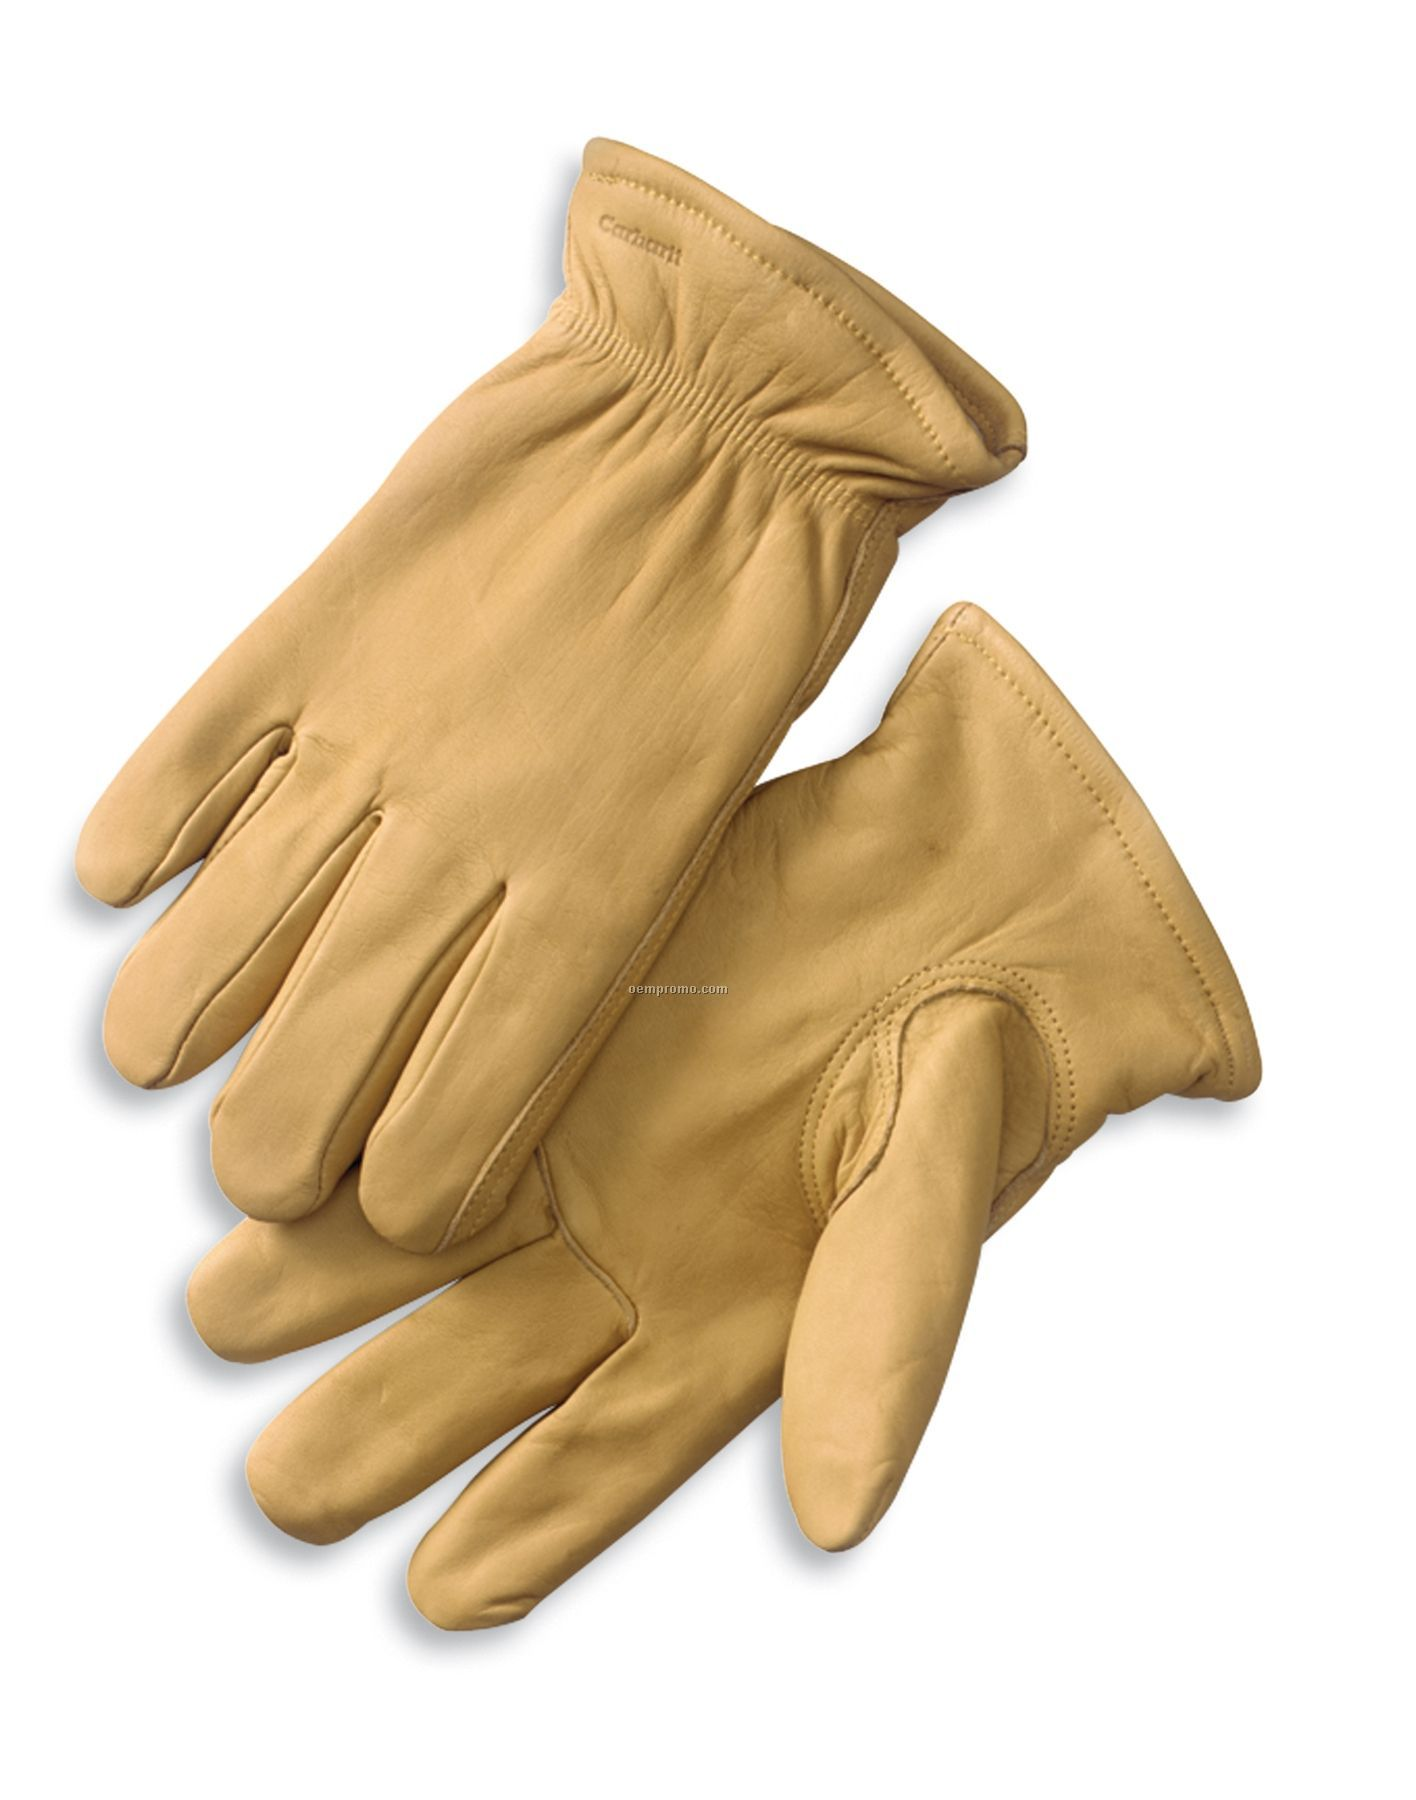 Mens leather insulated gloves - Carhartt Men S Insulated Leather Driver Gloves